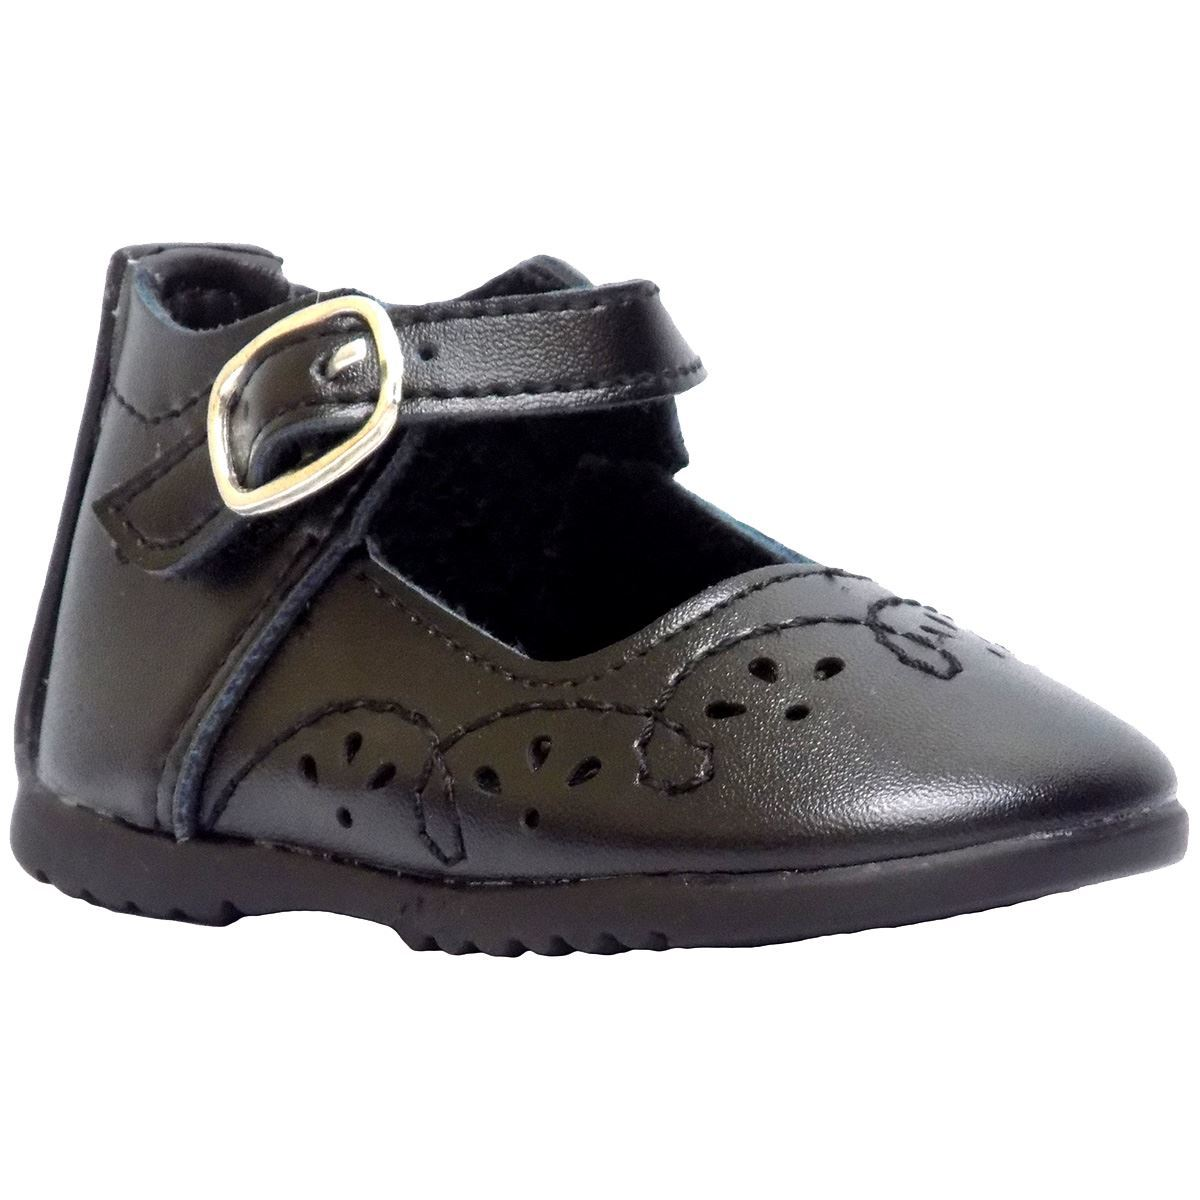 Toddler Black Patent Leather Mary Jane Shoes